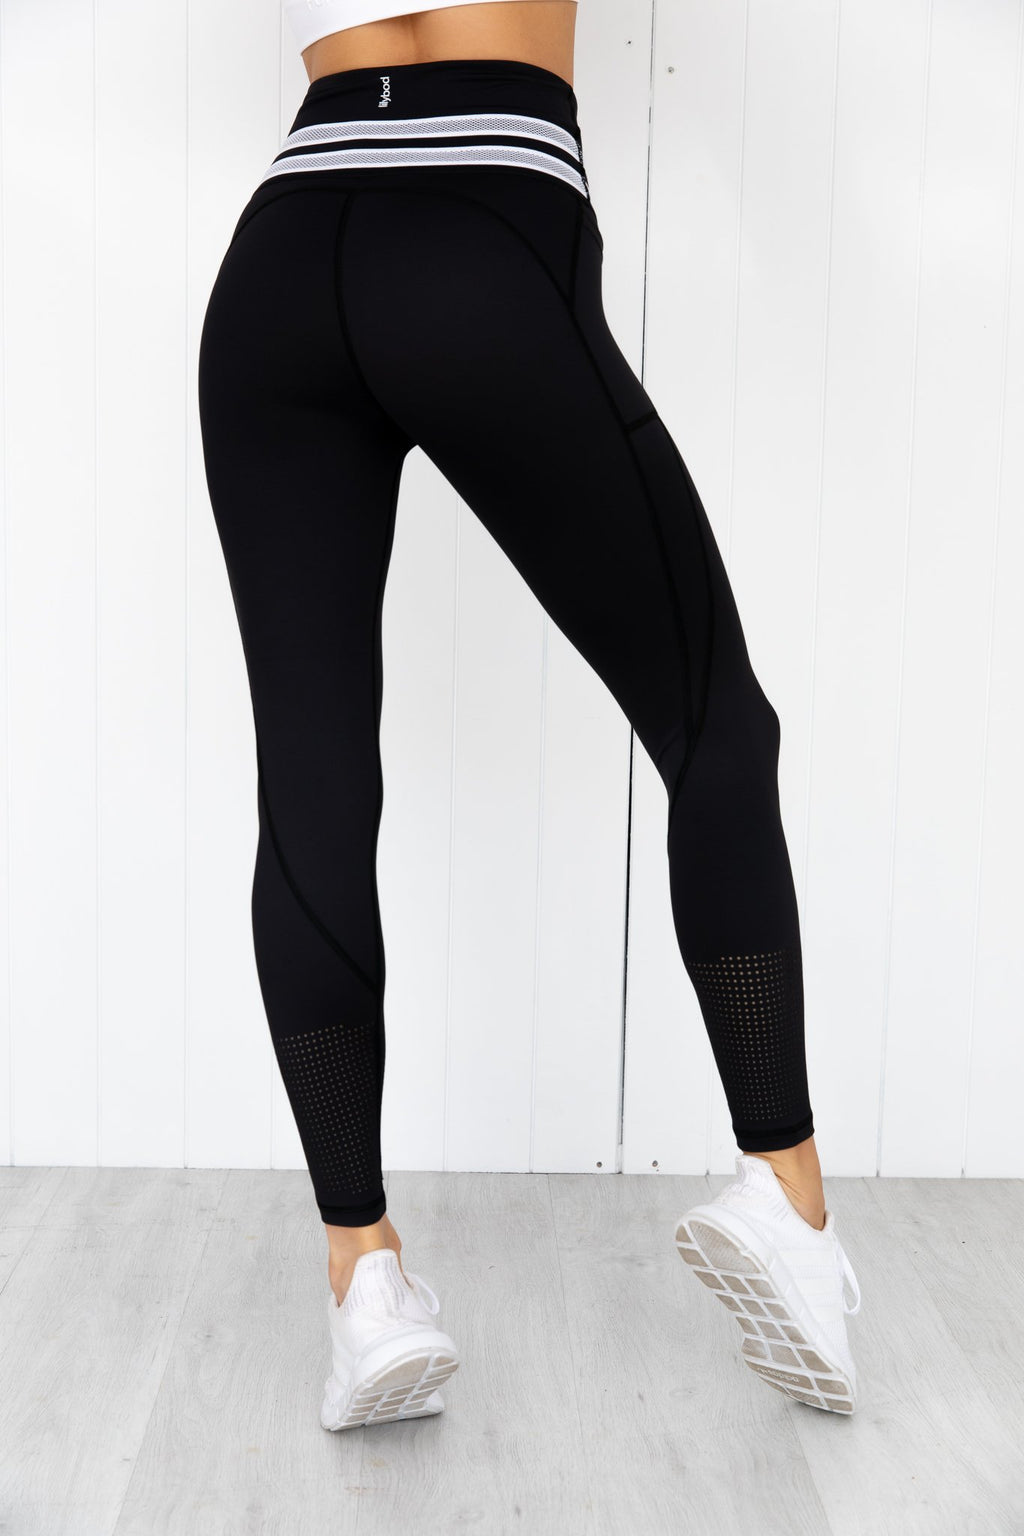 Pipa 7-X Leggings -  Tarmac Black